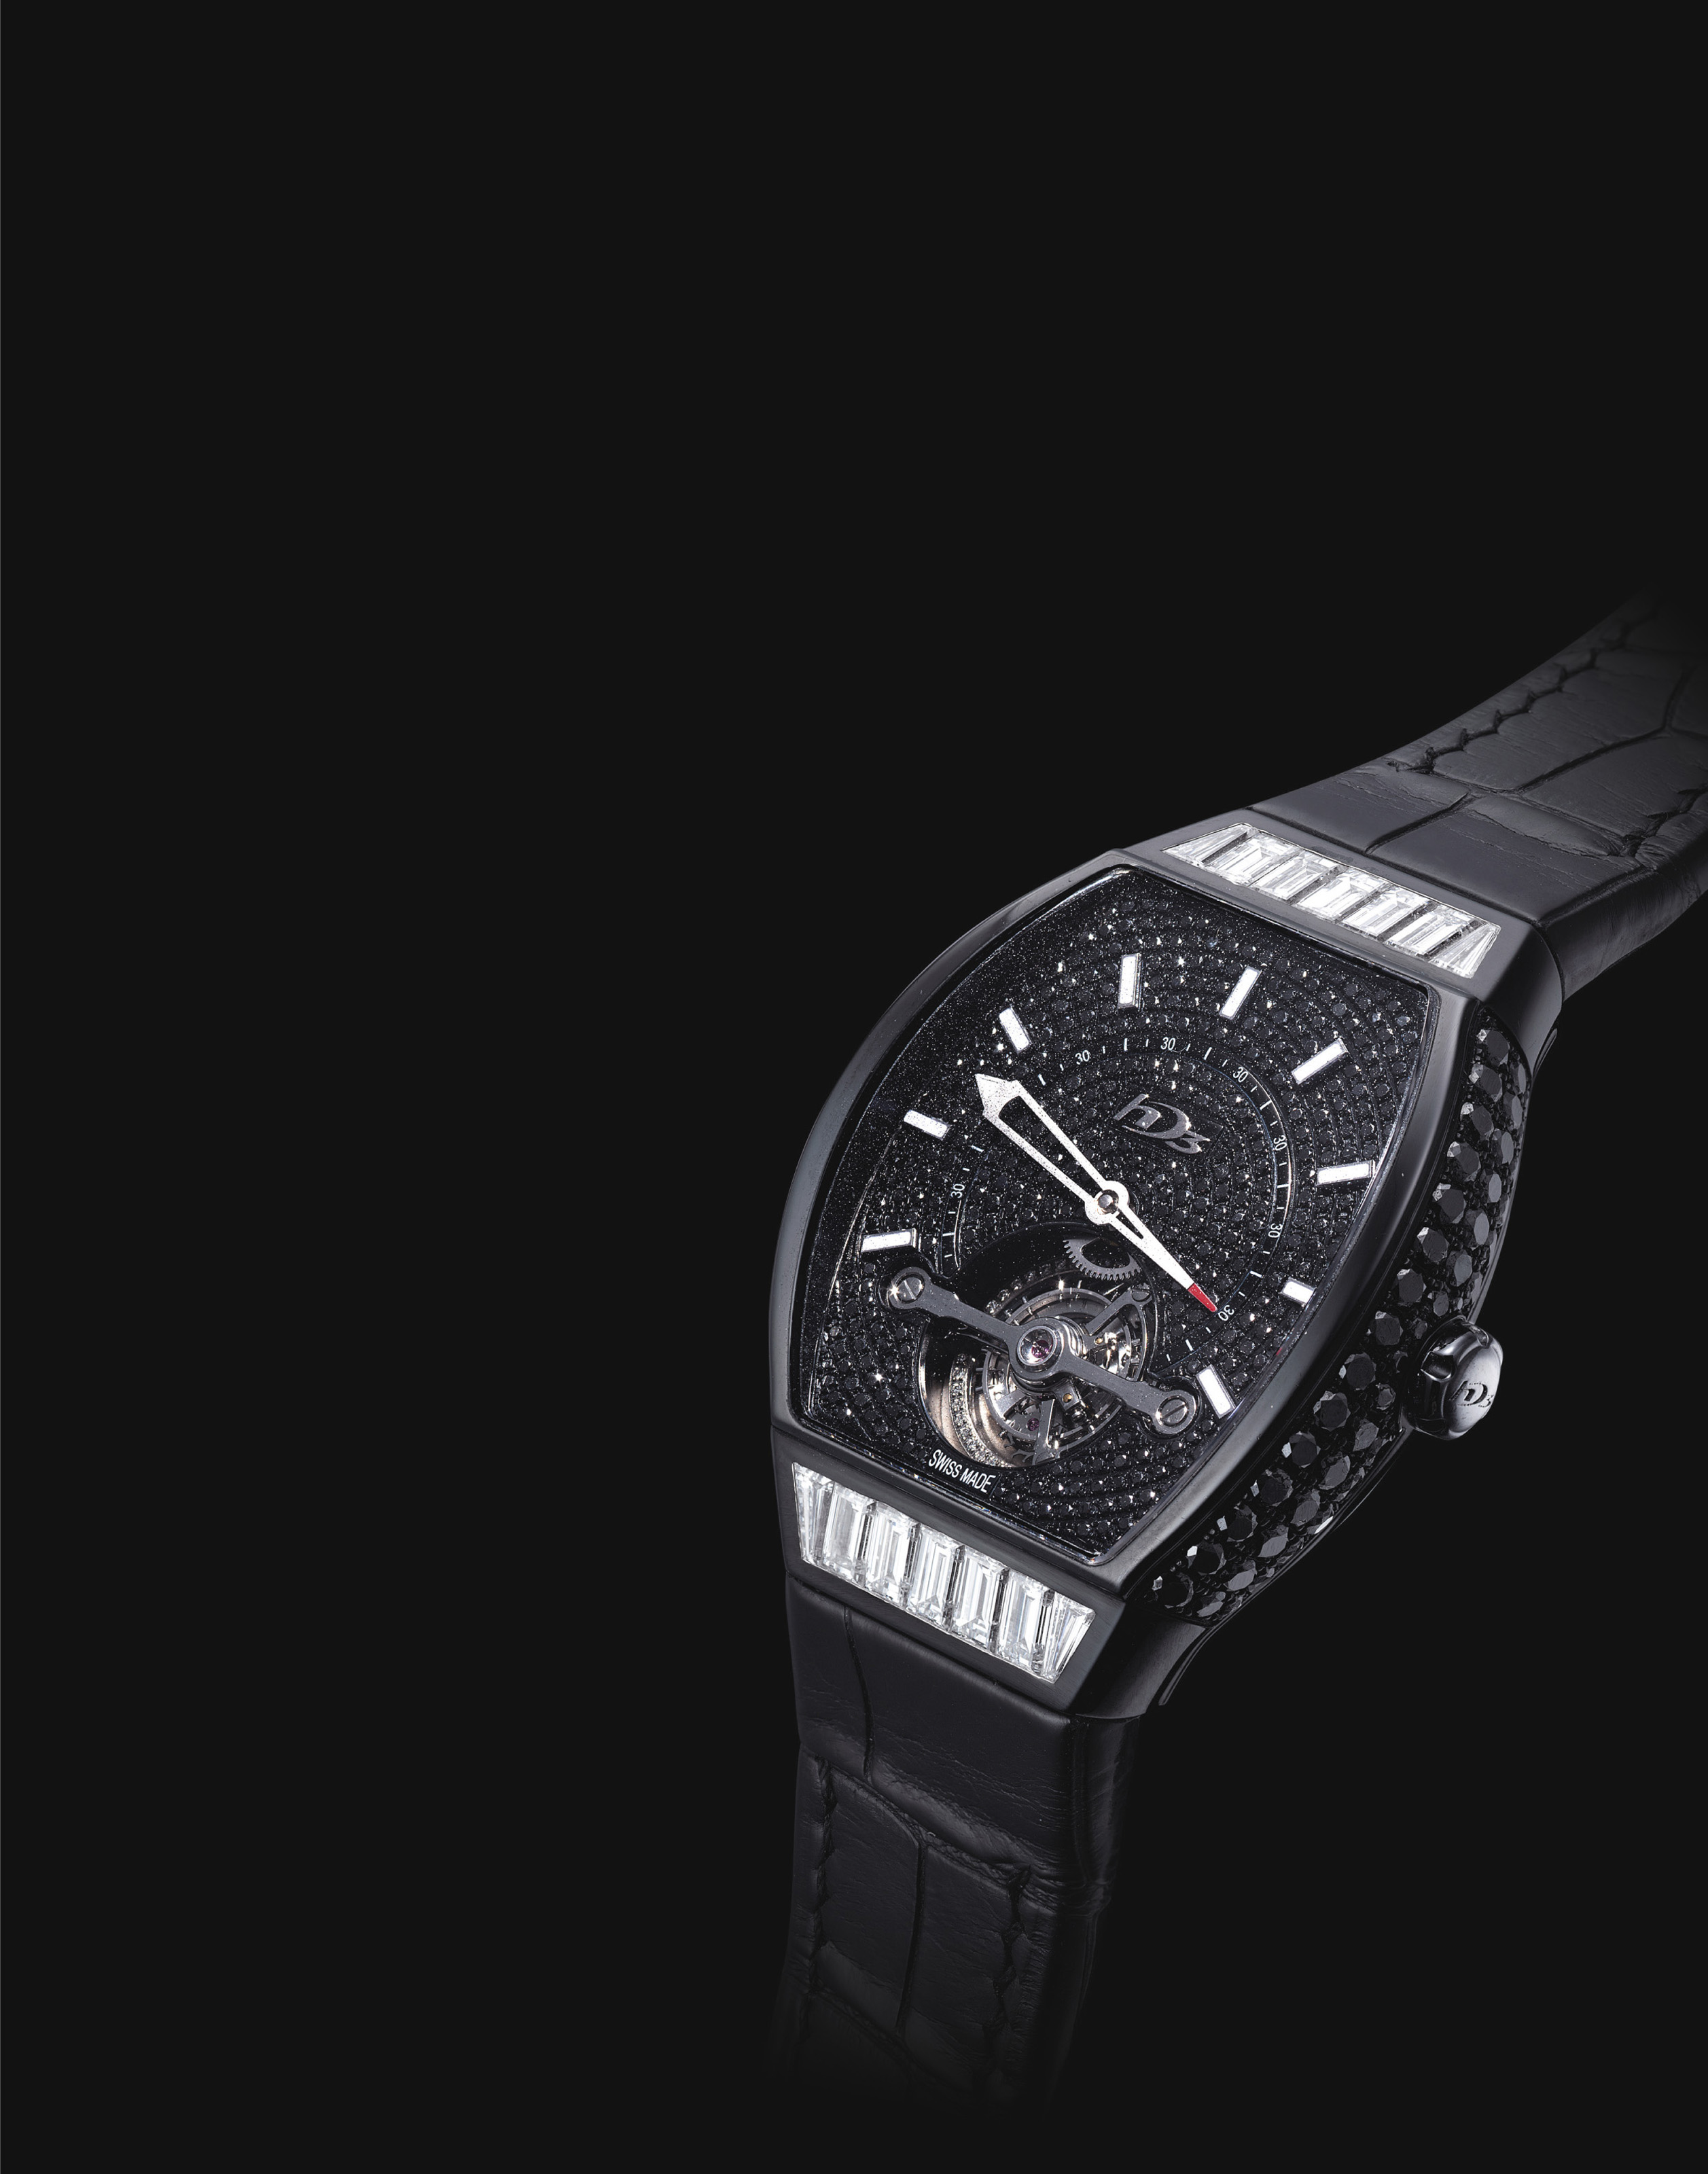 HD3. A UNIQUE BLACK PVD-COATED 18K WHITE GOLD, DIAMOND AND BLACK DIAMOND-SET TONNEAU-SHAPED TOURBILLON WRISTWATCH